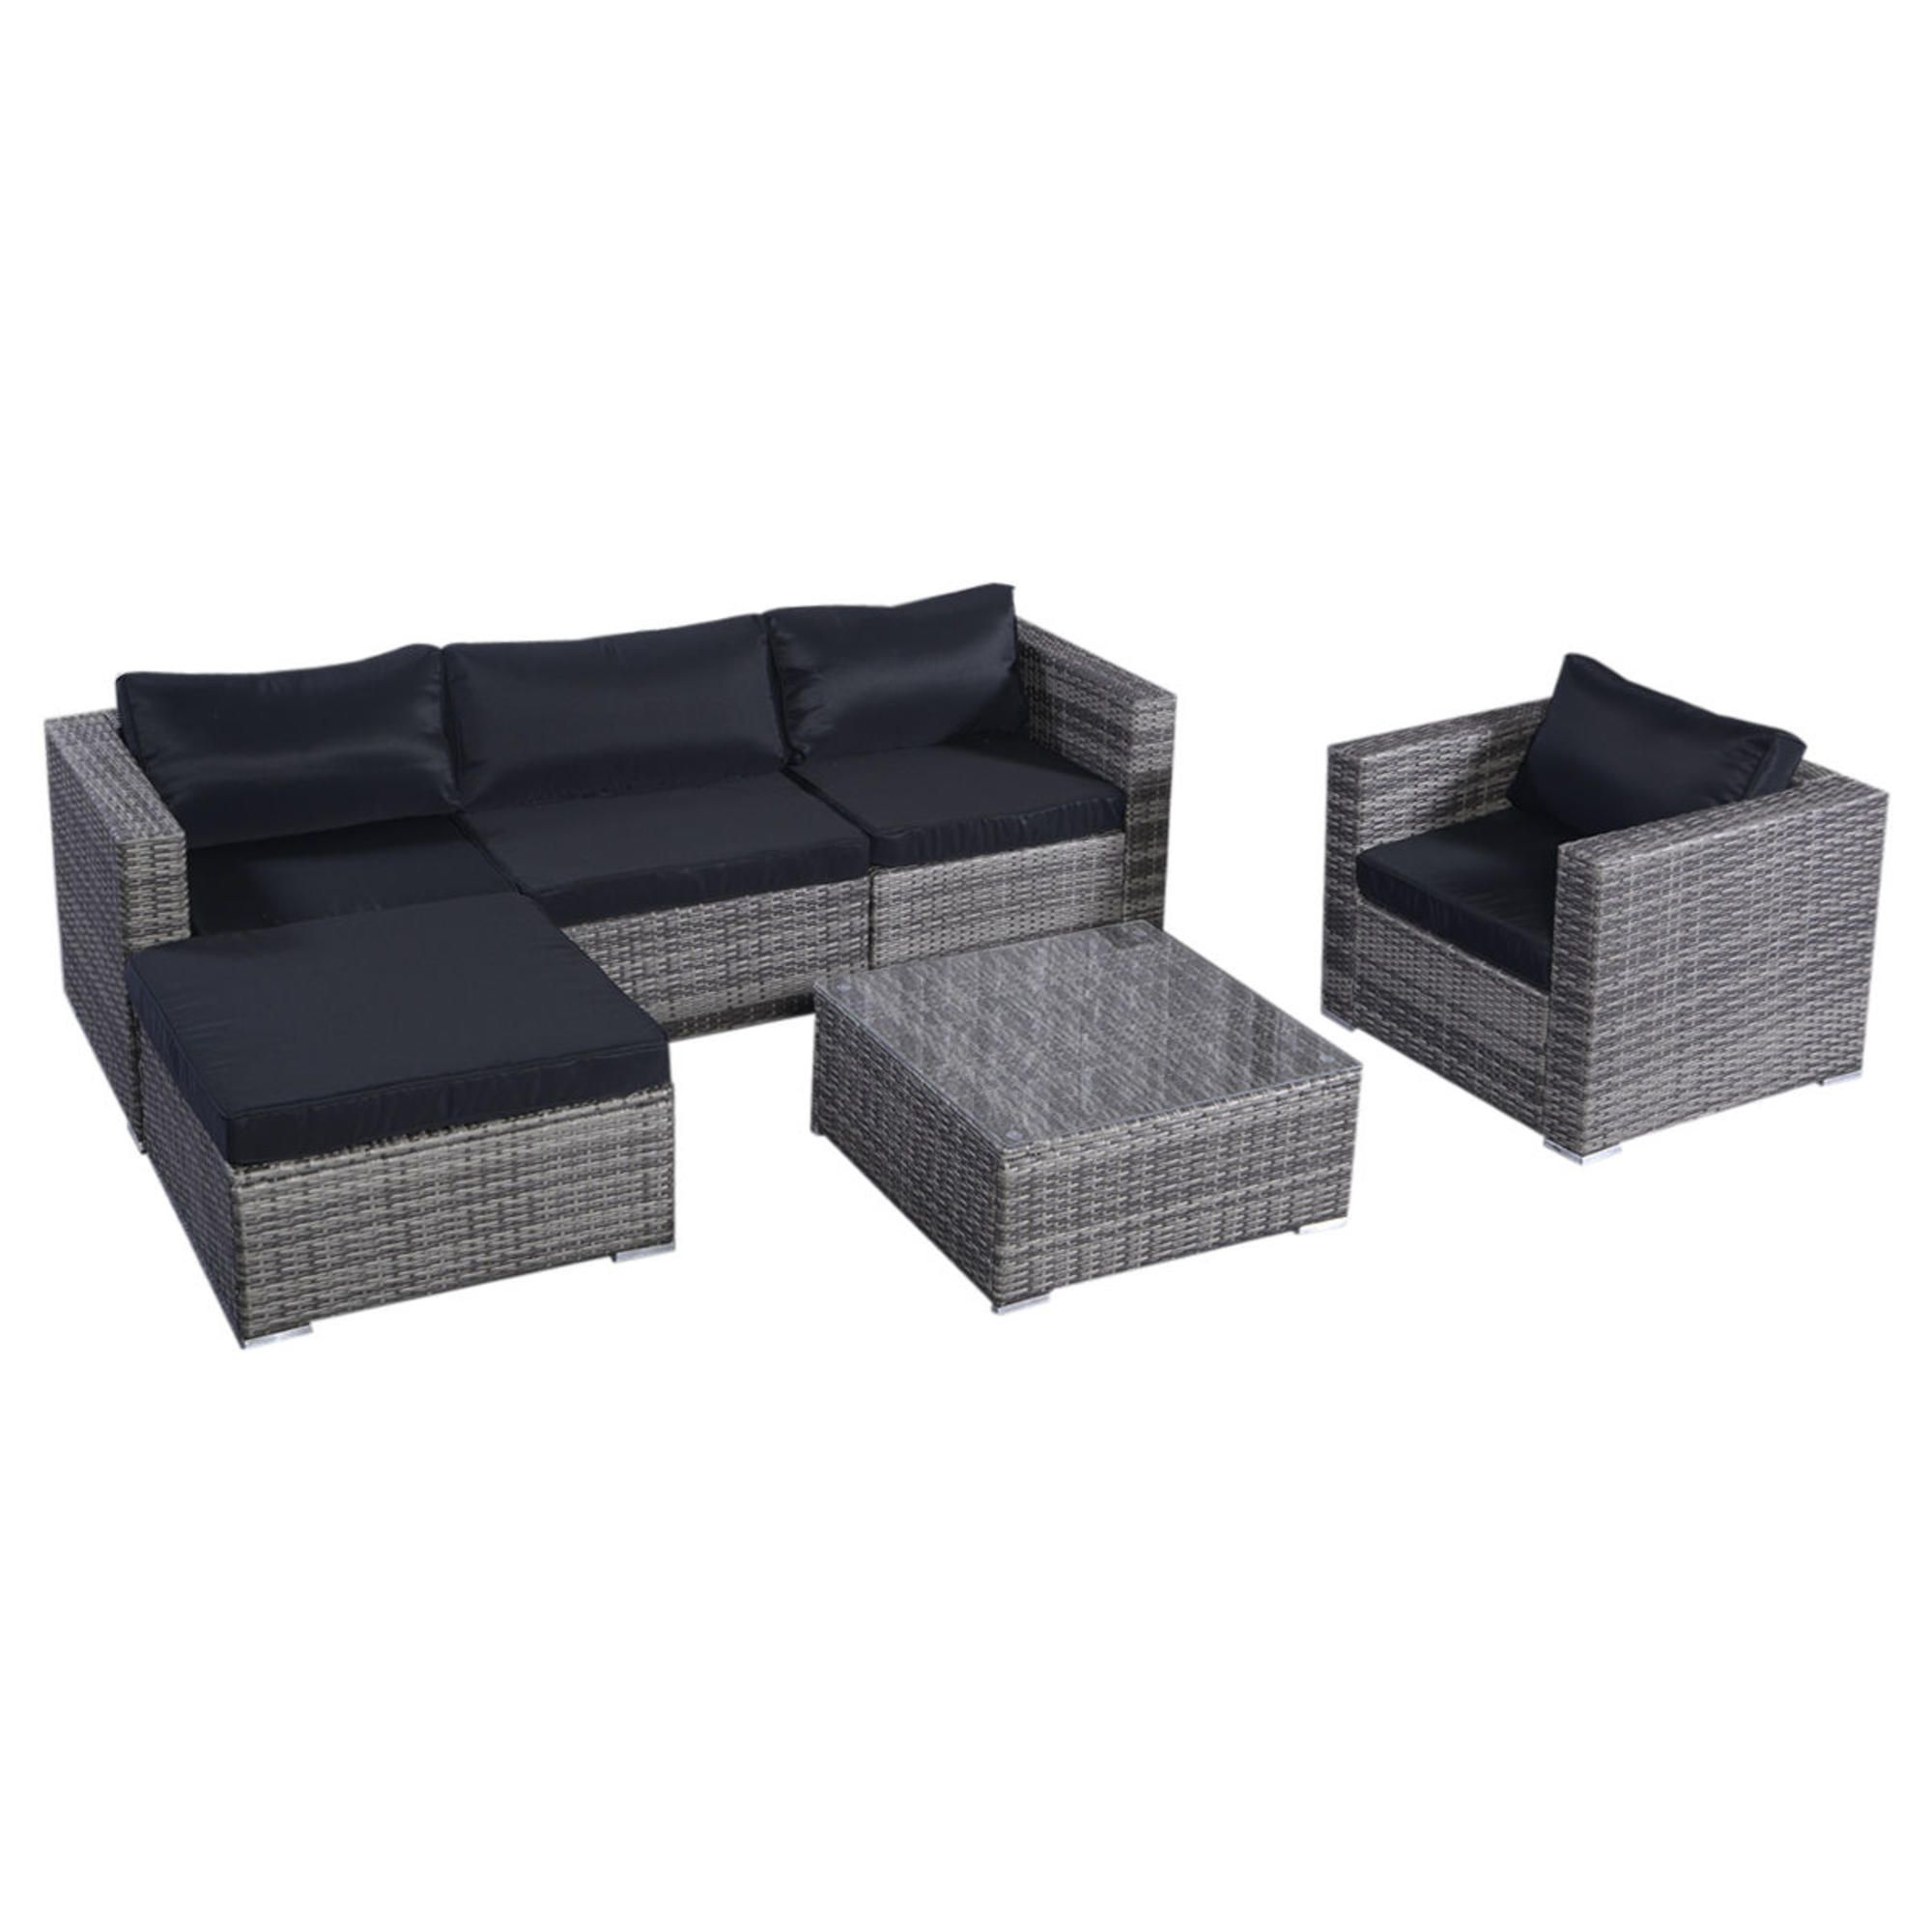 Goplus Goplus 6PC Furniture Set Aluminum Patio Sofa PE Gray Rattan Couch 2  Set Cushion Covers. Outdoor Wicker ... Part 90